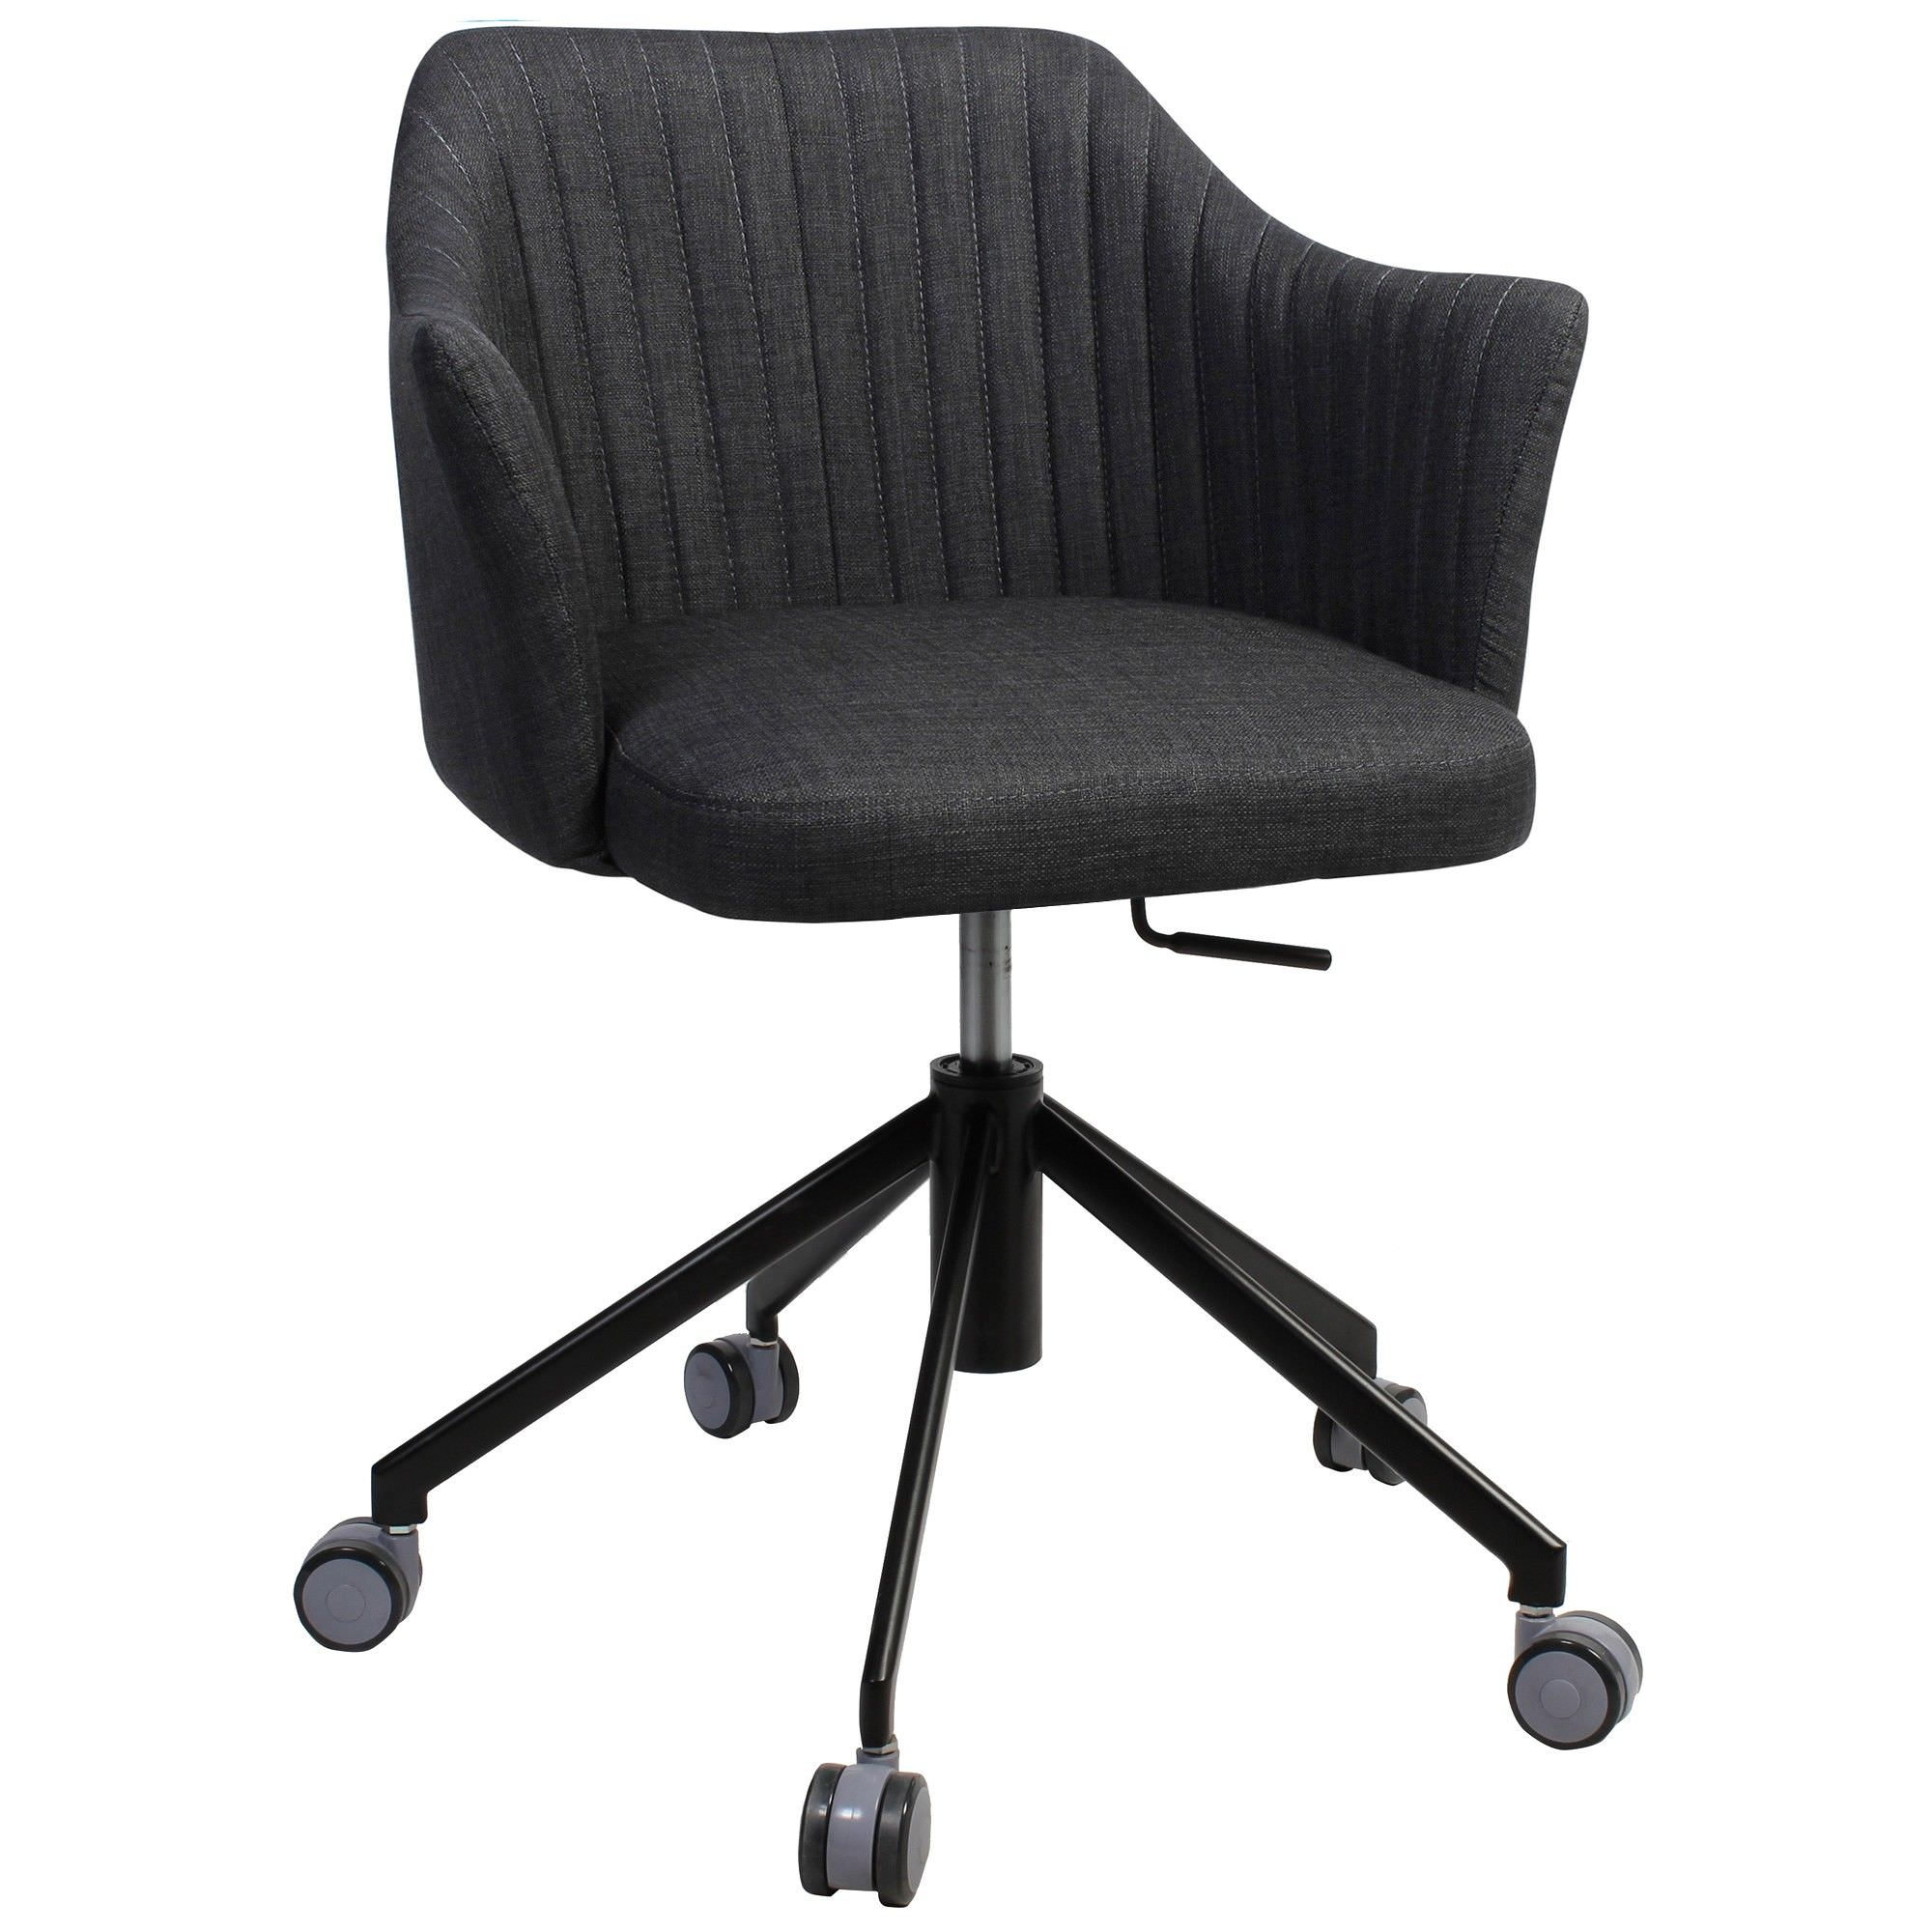 Coogee Commercial Grade Gas Lift Fabric Office Armchair, Charcoal / Black